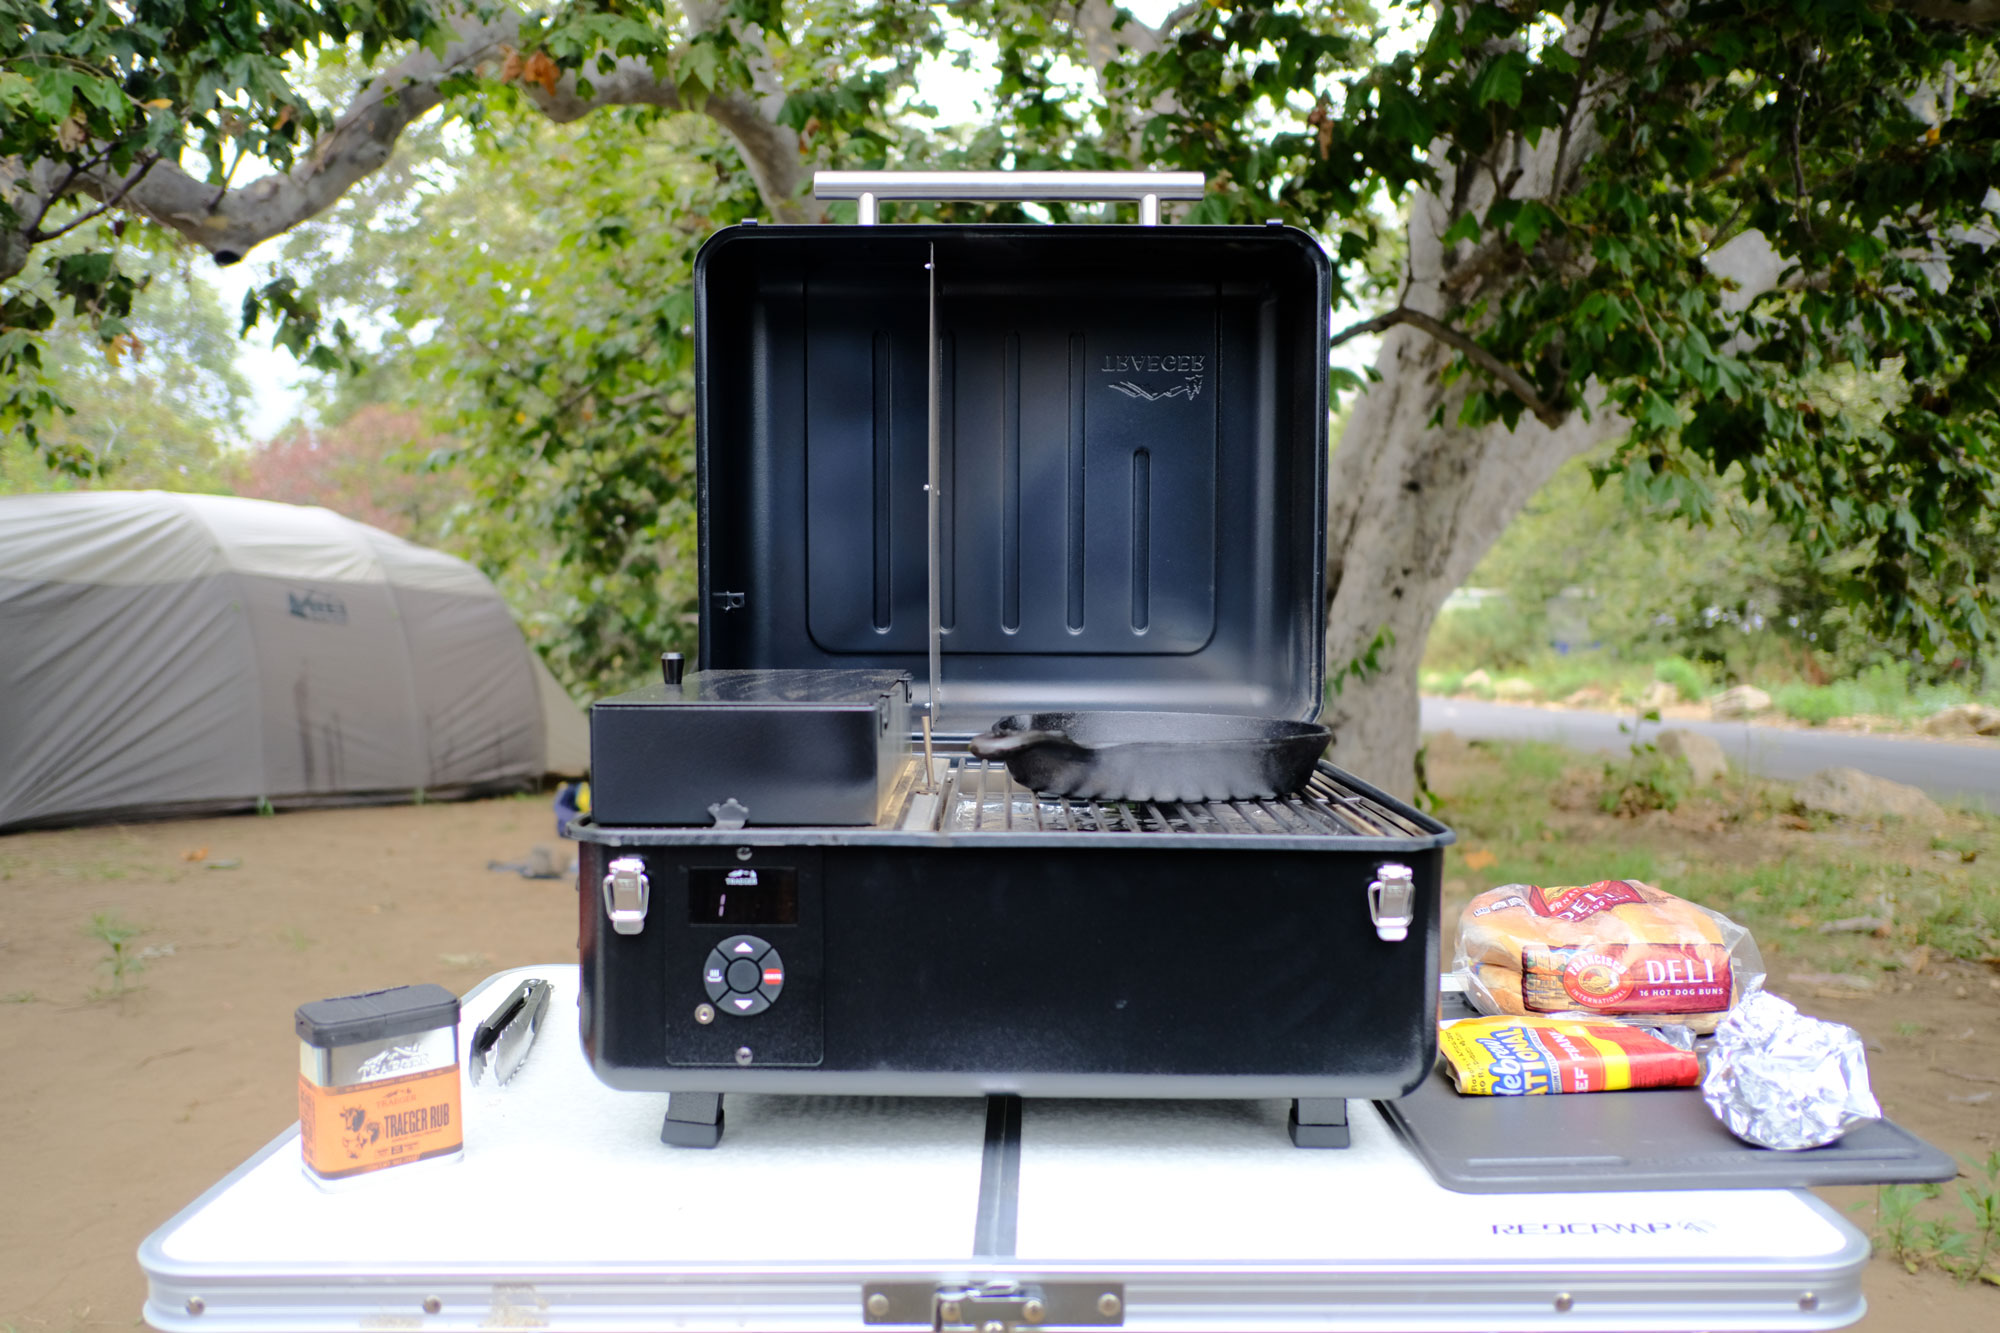 The Compact, Portable Traeger Ranger Takes Camp Cooking to the Next Level